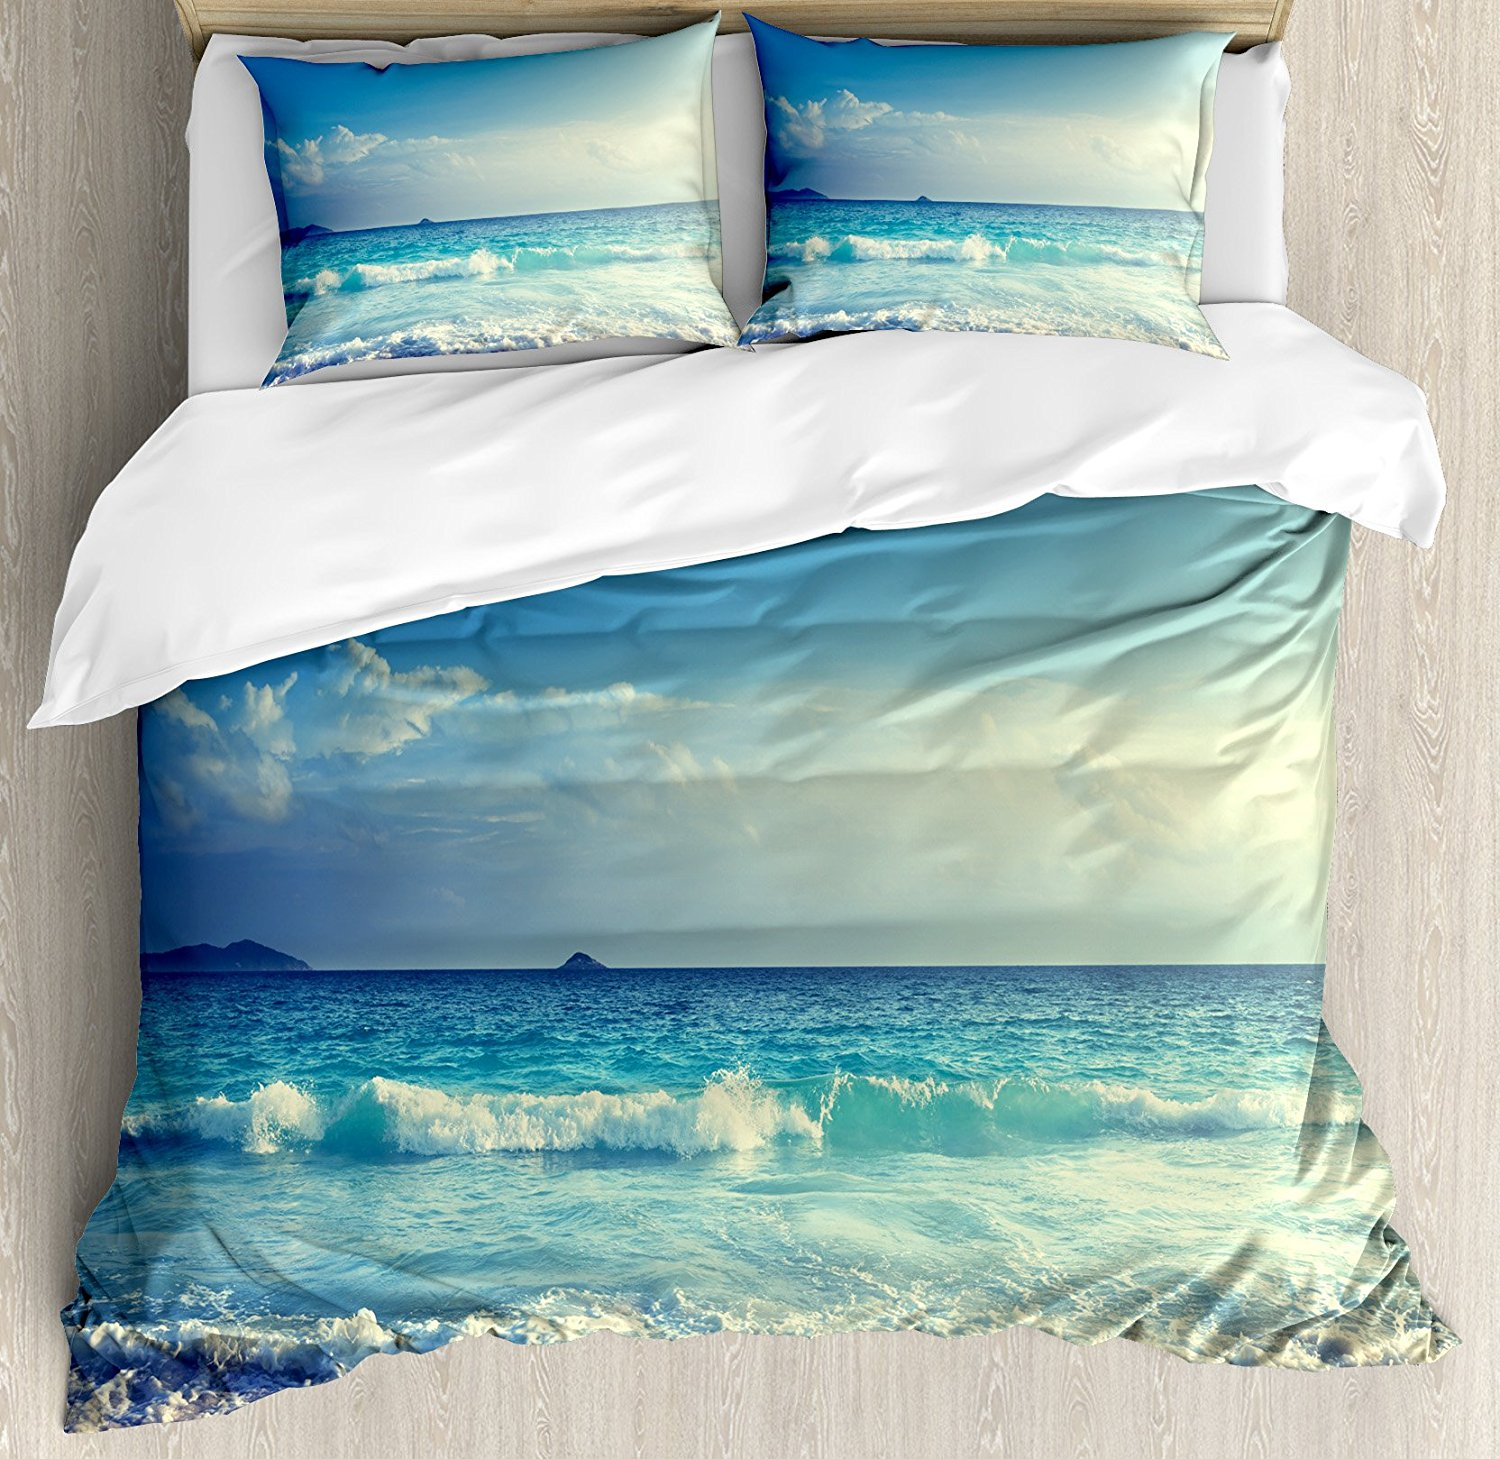 Ocean Duvet Cover Set Tropical Island Paradise Beach at Sunset Time with Waves and the Misty Sea Image 4 Piece Bedding Set